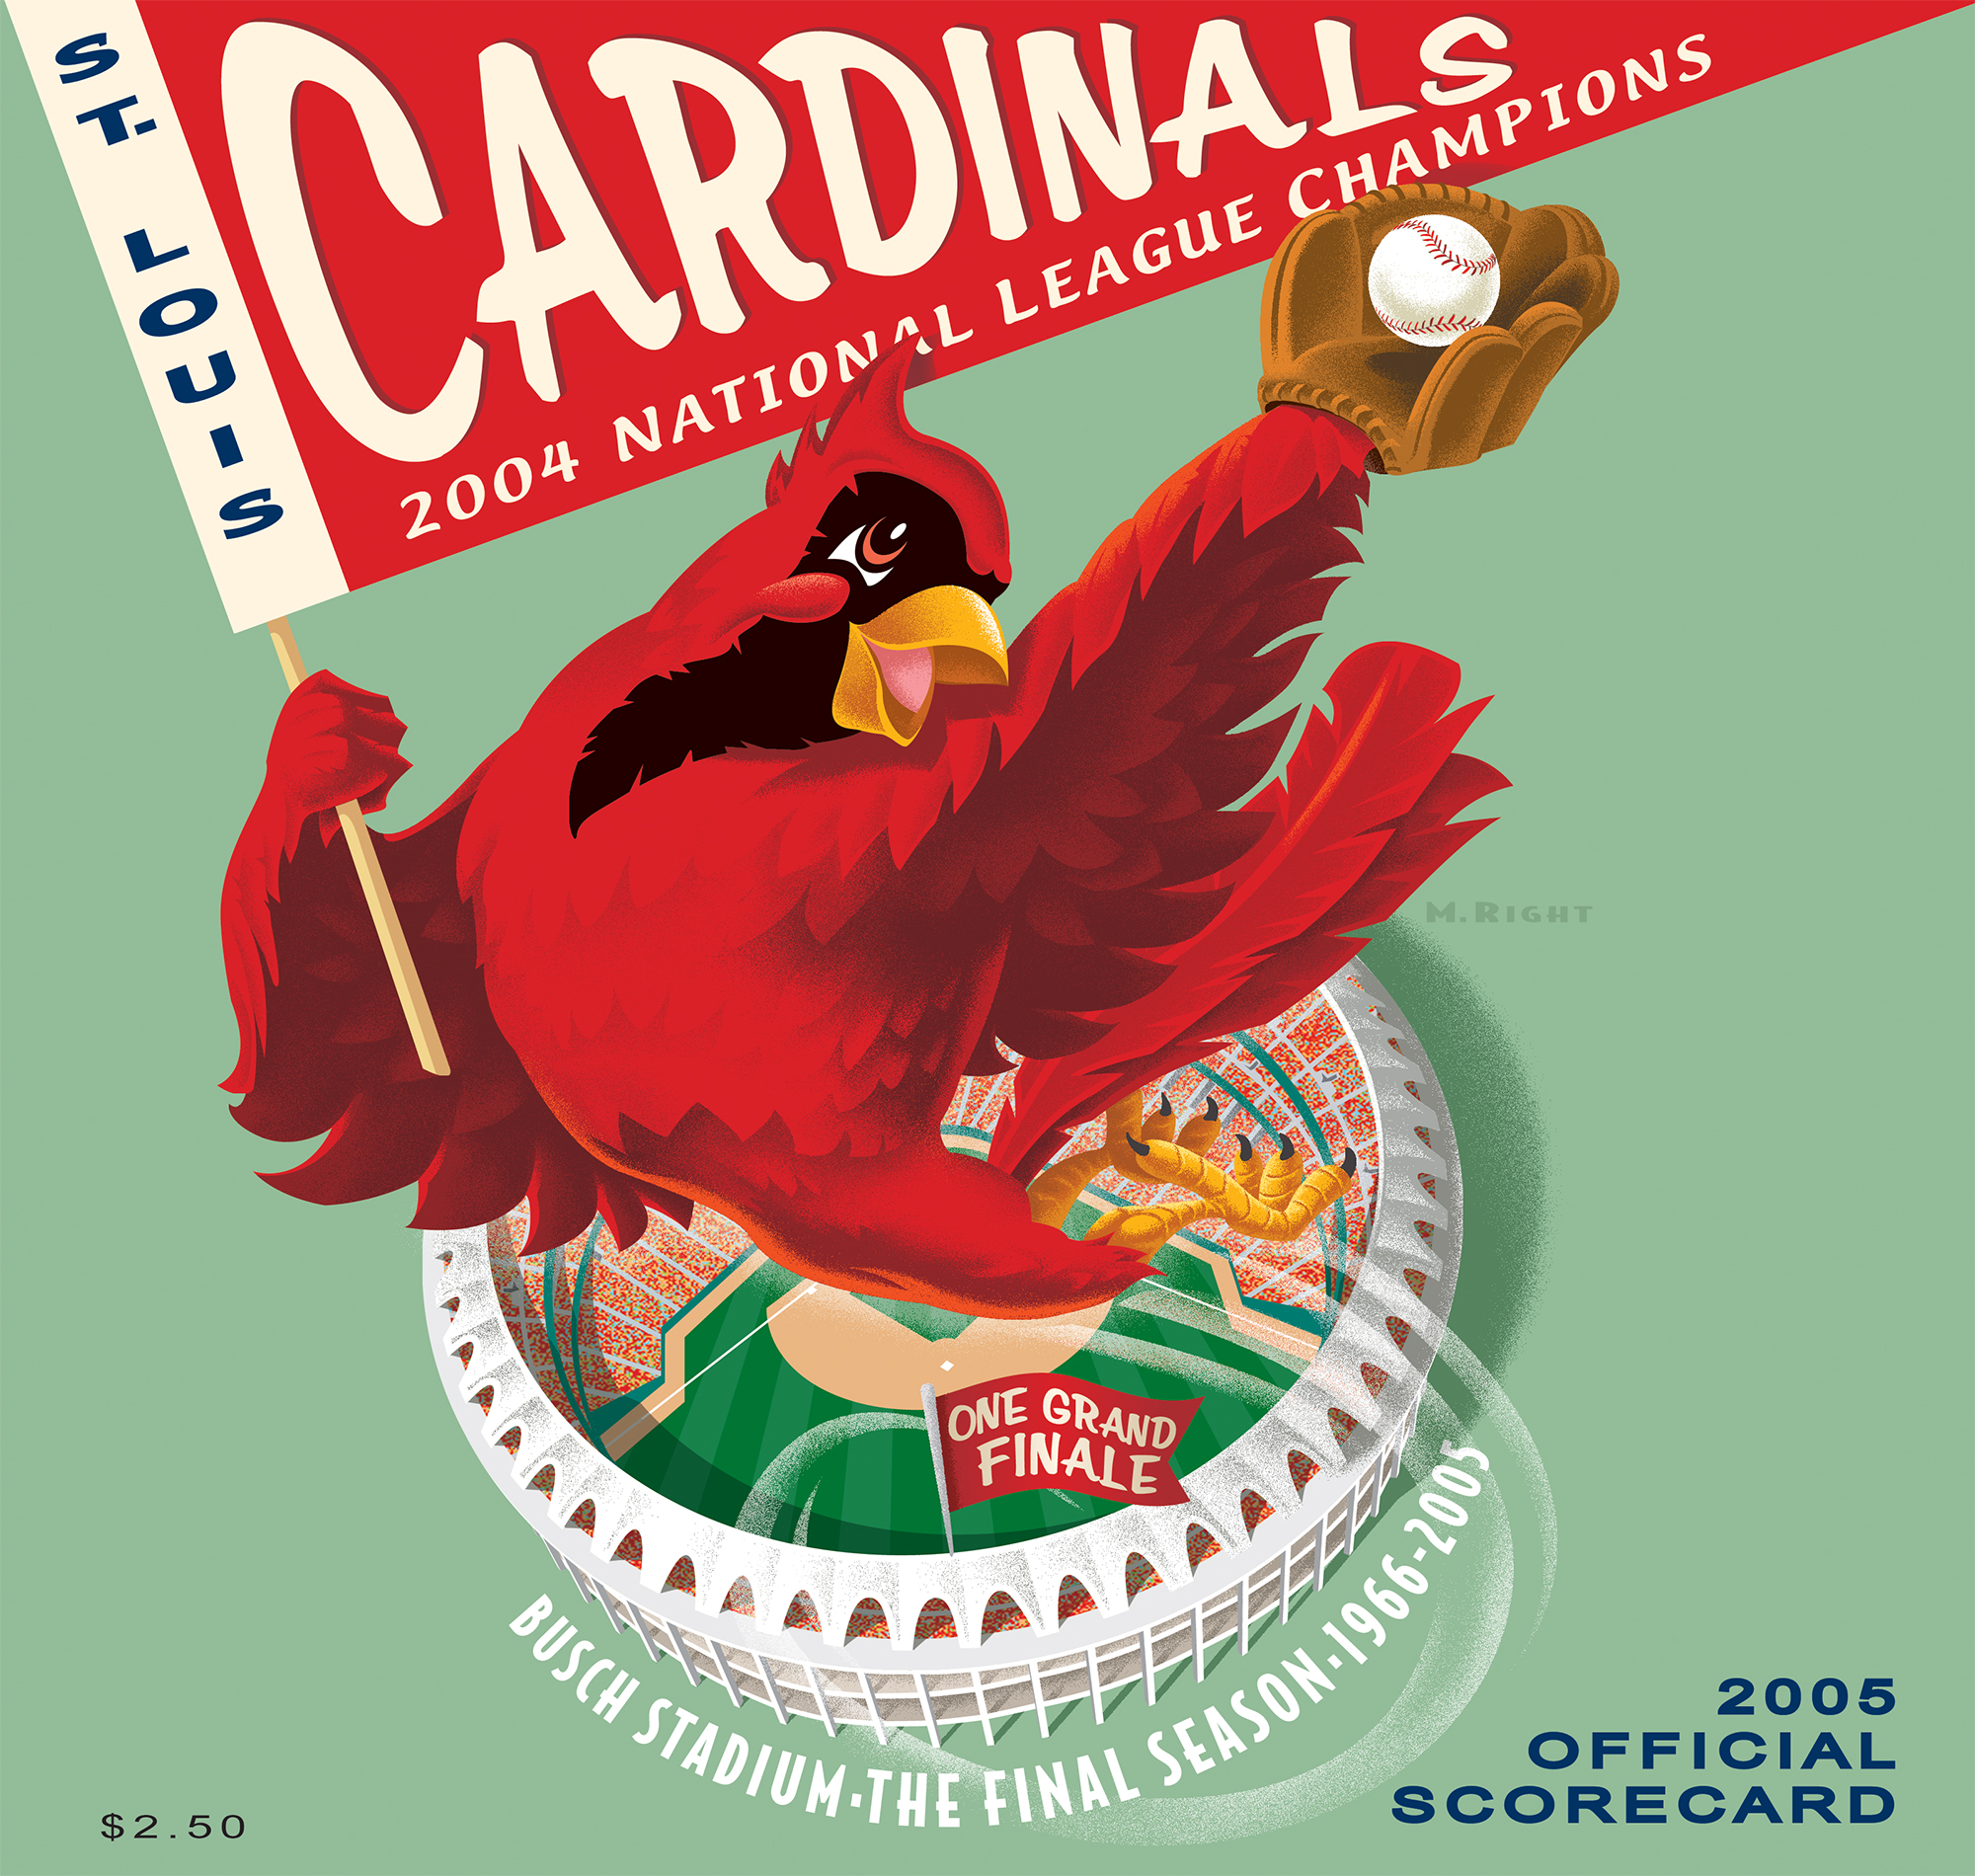 2005 Cardinals Official Scorecard